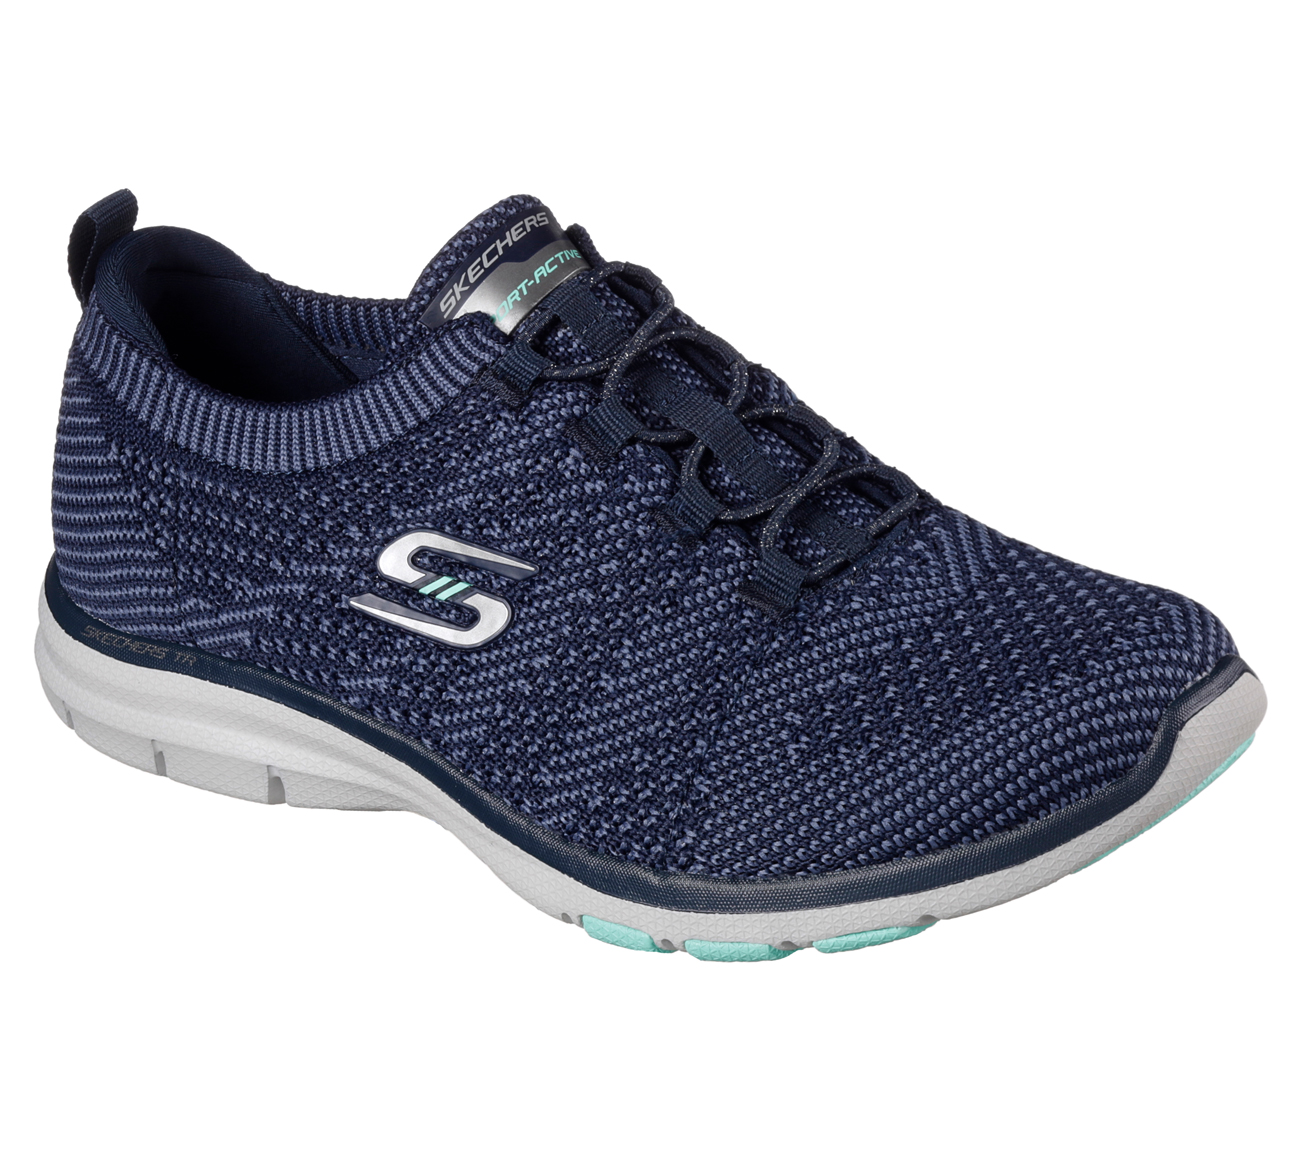 buy skechers galaxies athletic sneakers shoes only 70 00